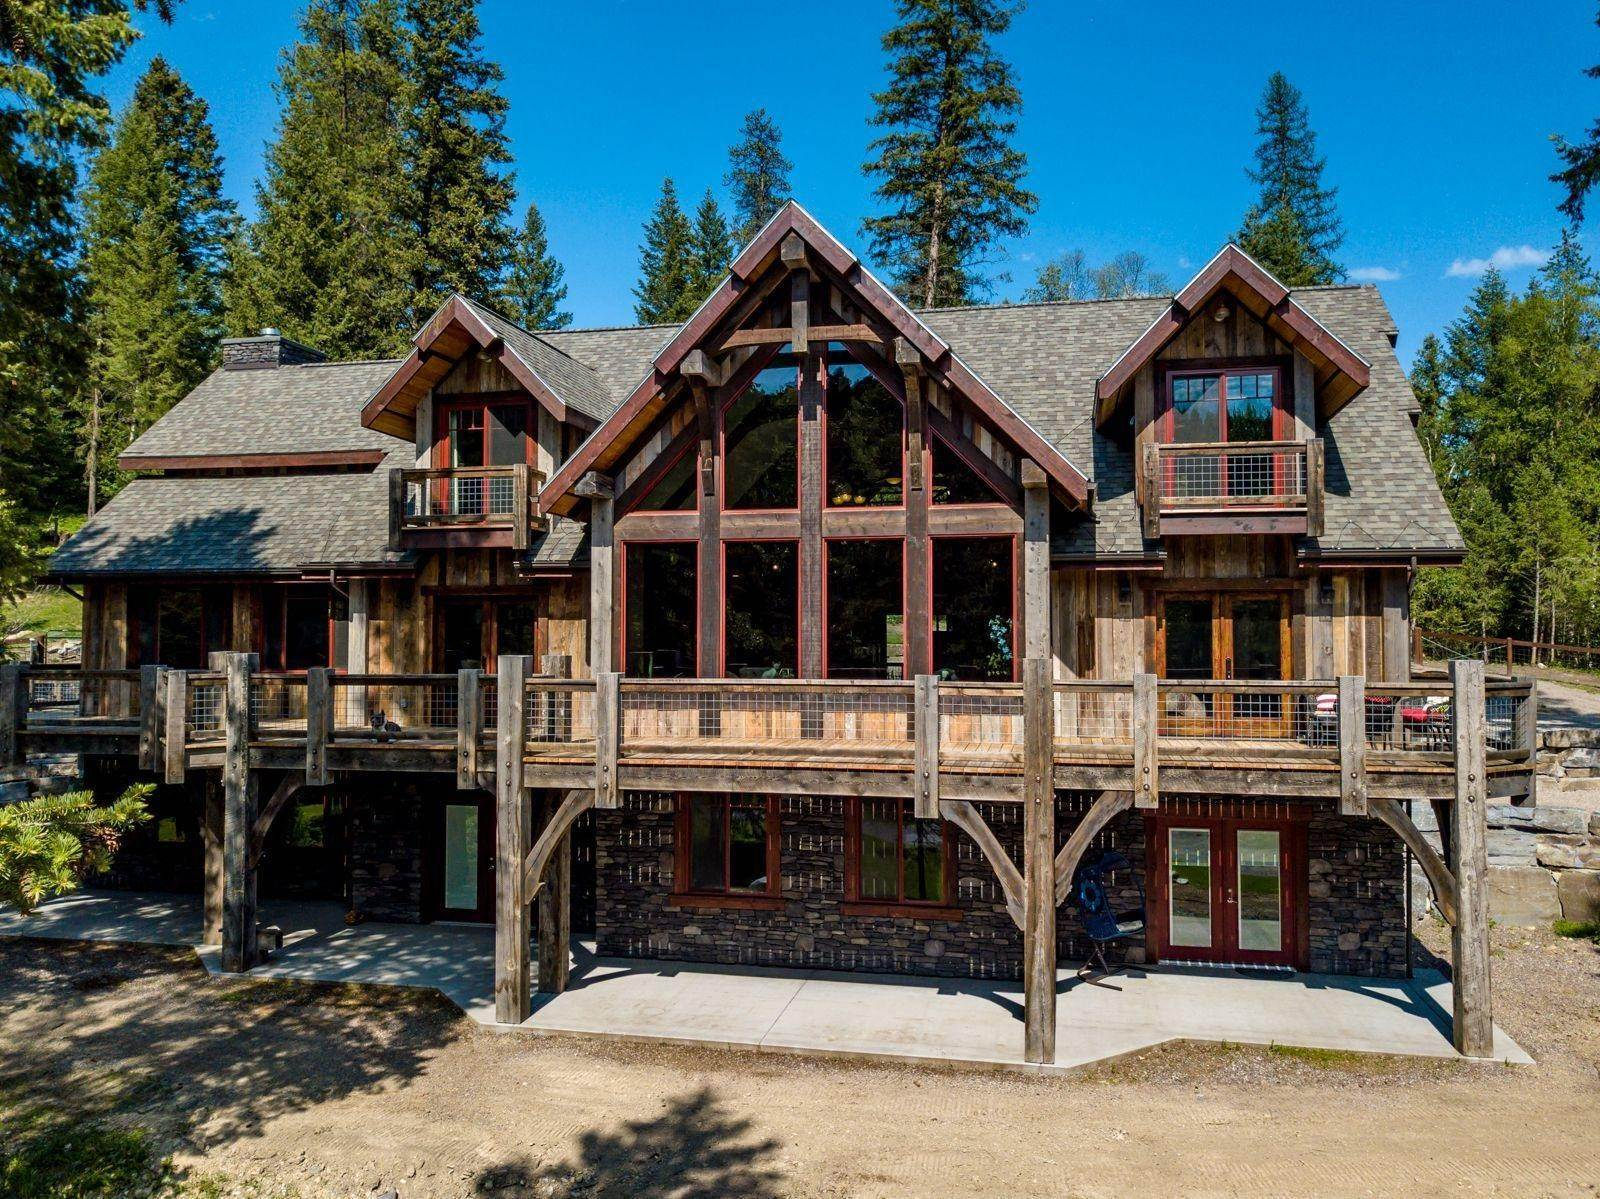 Single Family Homes for Sale at 2870 Us Hwy 93 West Whitefish, Montana 59937 United States